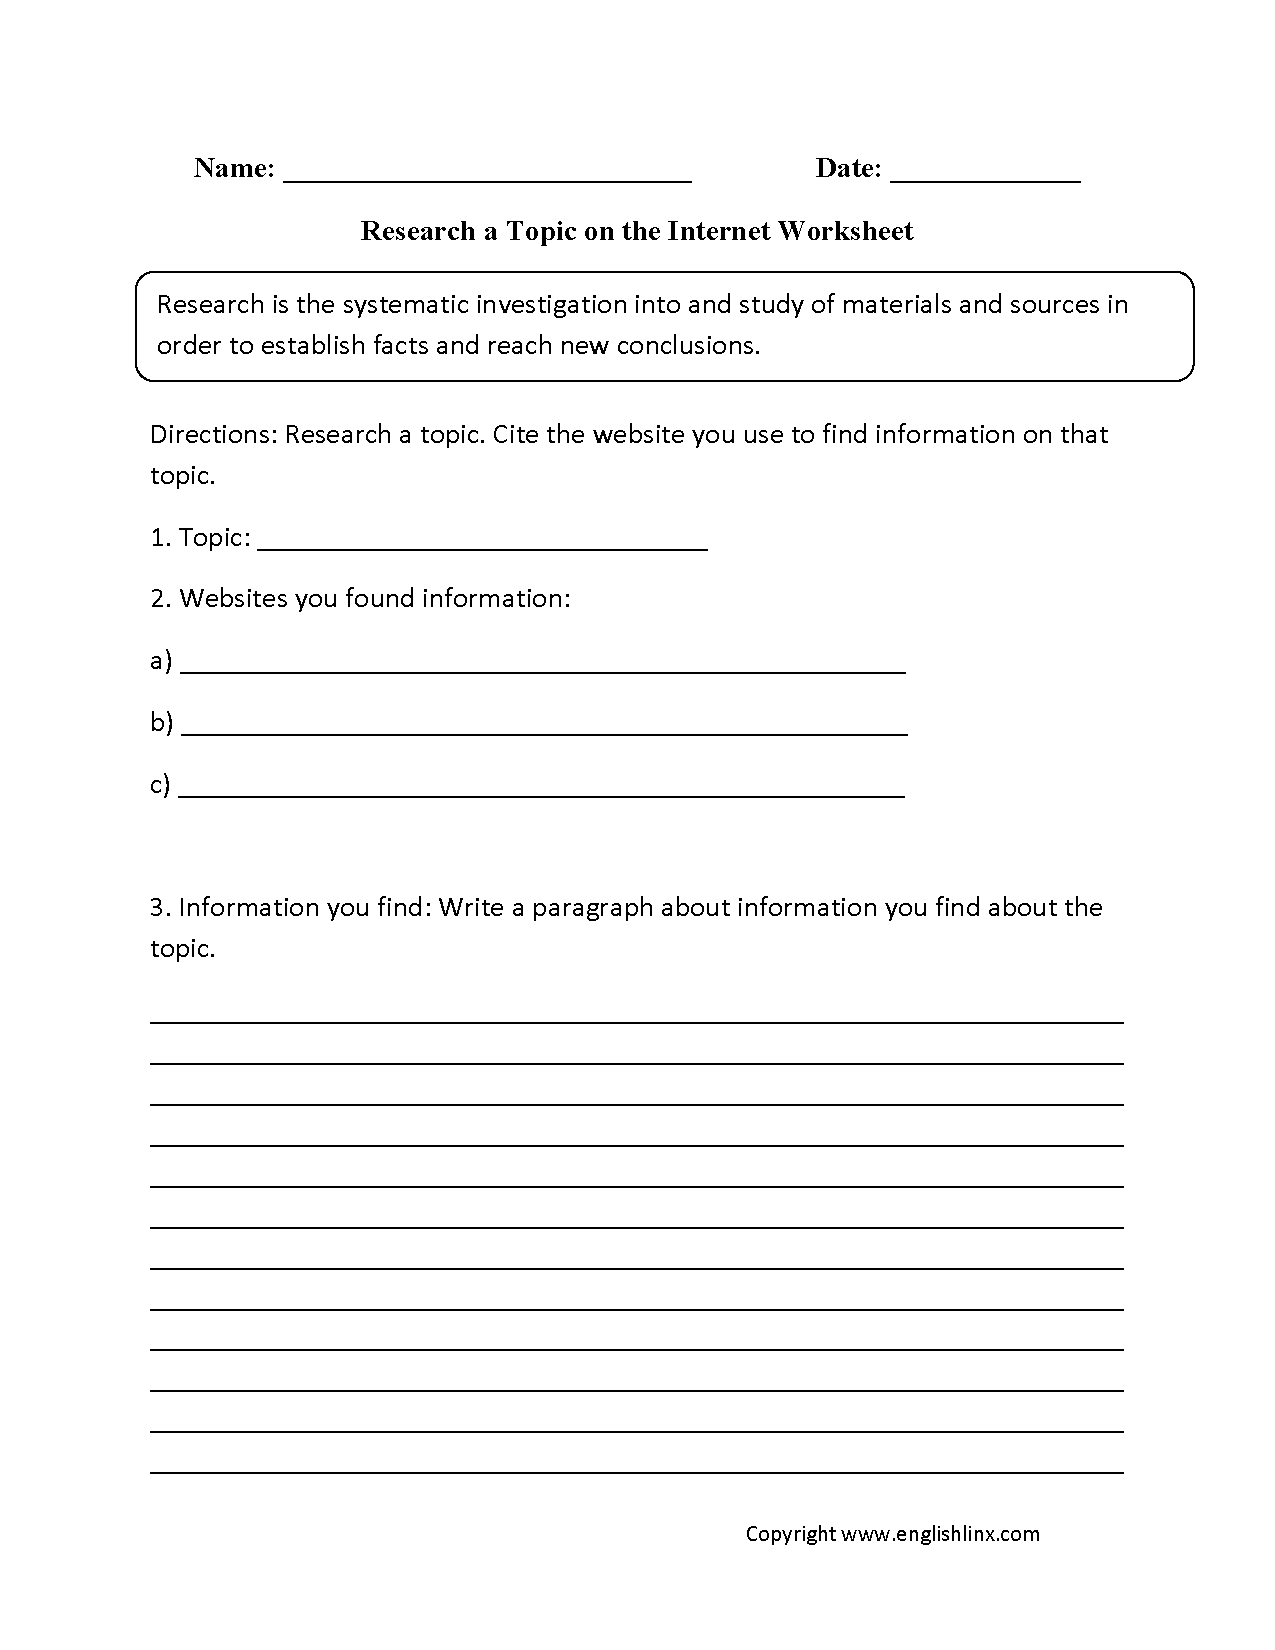 Aldiablosus  Seductive Englishlinxcom  Research Worksheets With Remarkable On The Internet Worksheet With Delectable Math Worksheets Area And Perimeter Also Analyzing Text Worksheets In Addition Equations In One Variable Worksheet And Insect Life Cycle Worksheet As Well As Th Grade Math Free Worksheets Additionally Protect Worksheet Vba From Englishlinxcom With Aldiablosus  Remarkable Englishlinxcom  Research Worksheets With Delectable On The Internet Worksheet And Seductive Math Worksheets Area And Perimeter Also Analyzing Text Worksheets In Addition Equations In One Variable Worksheet From Englishlinxcom